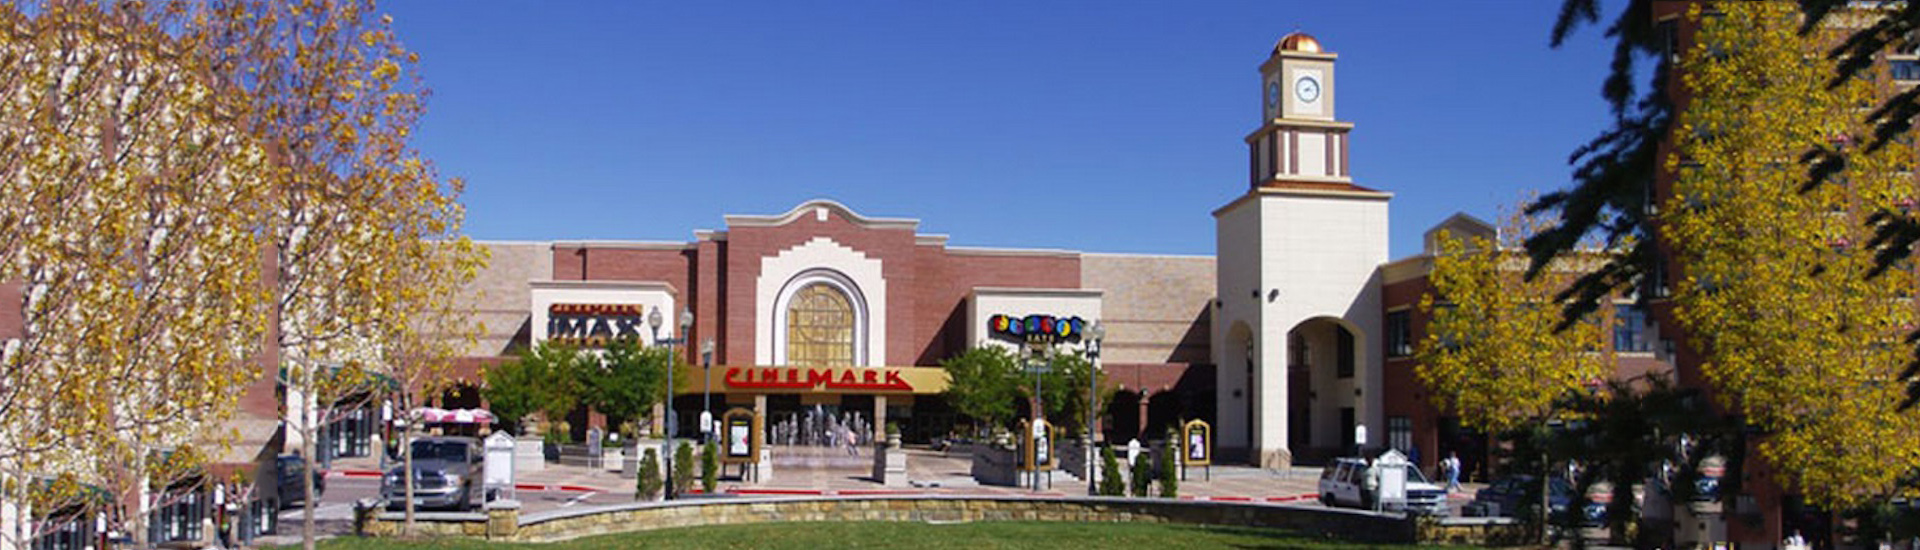 First and Main Shopping Center Colorado Springs